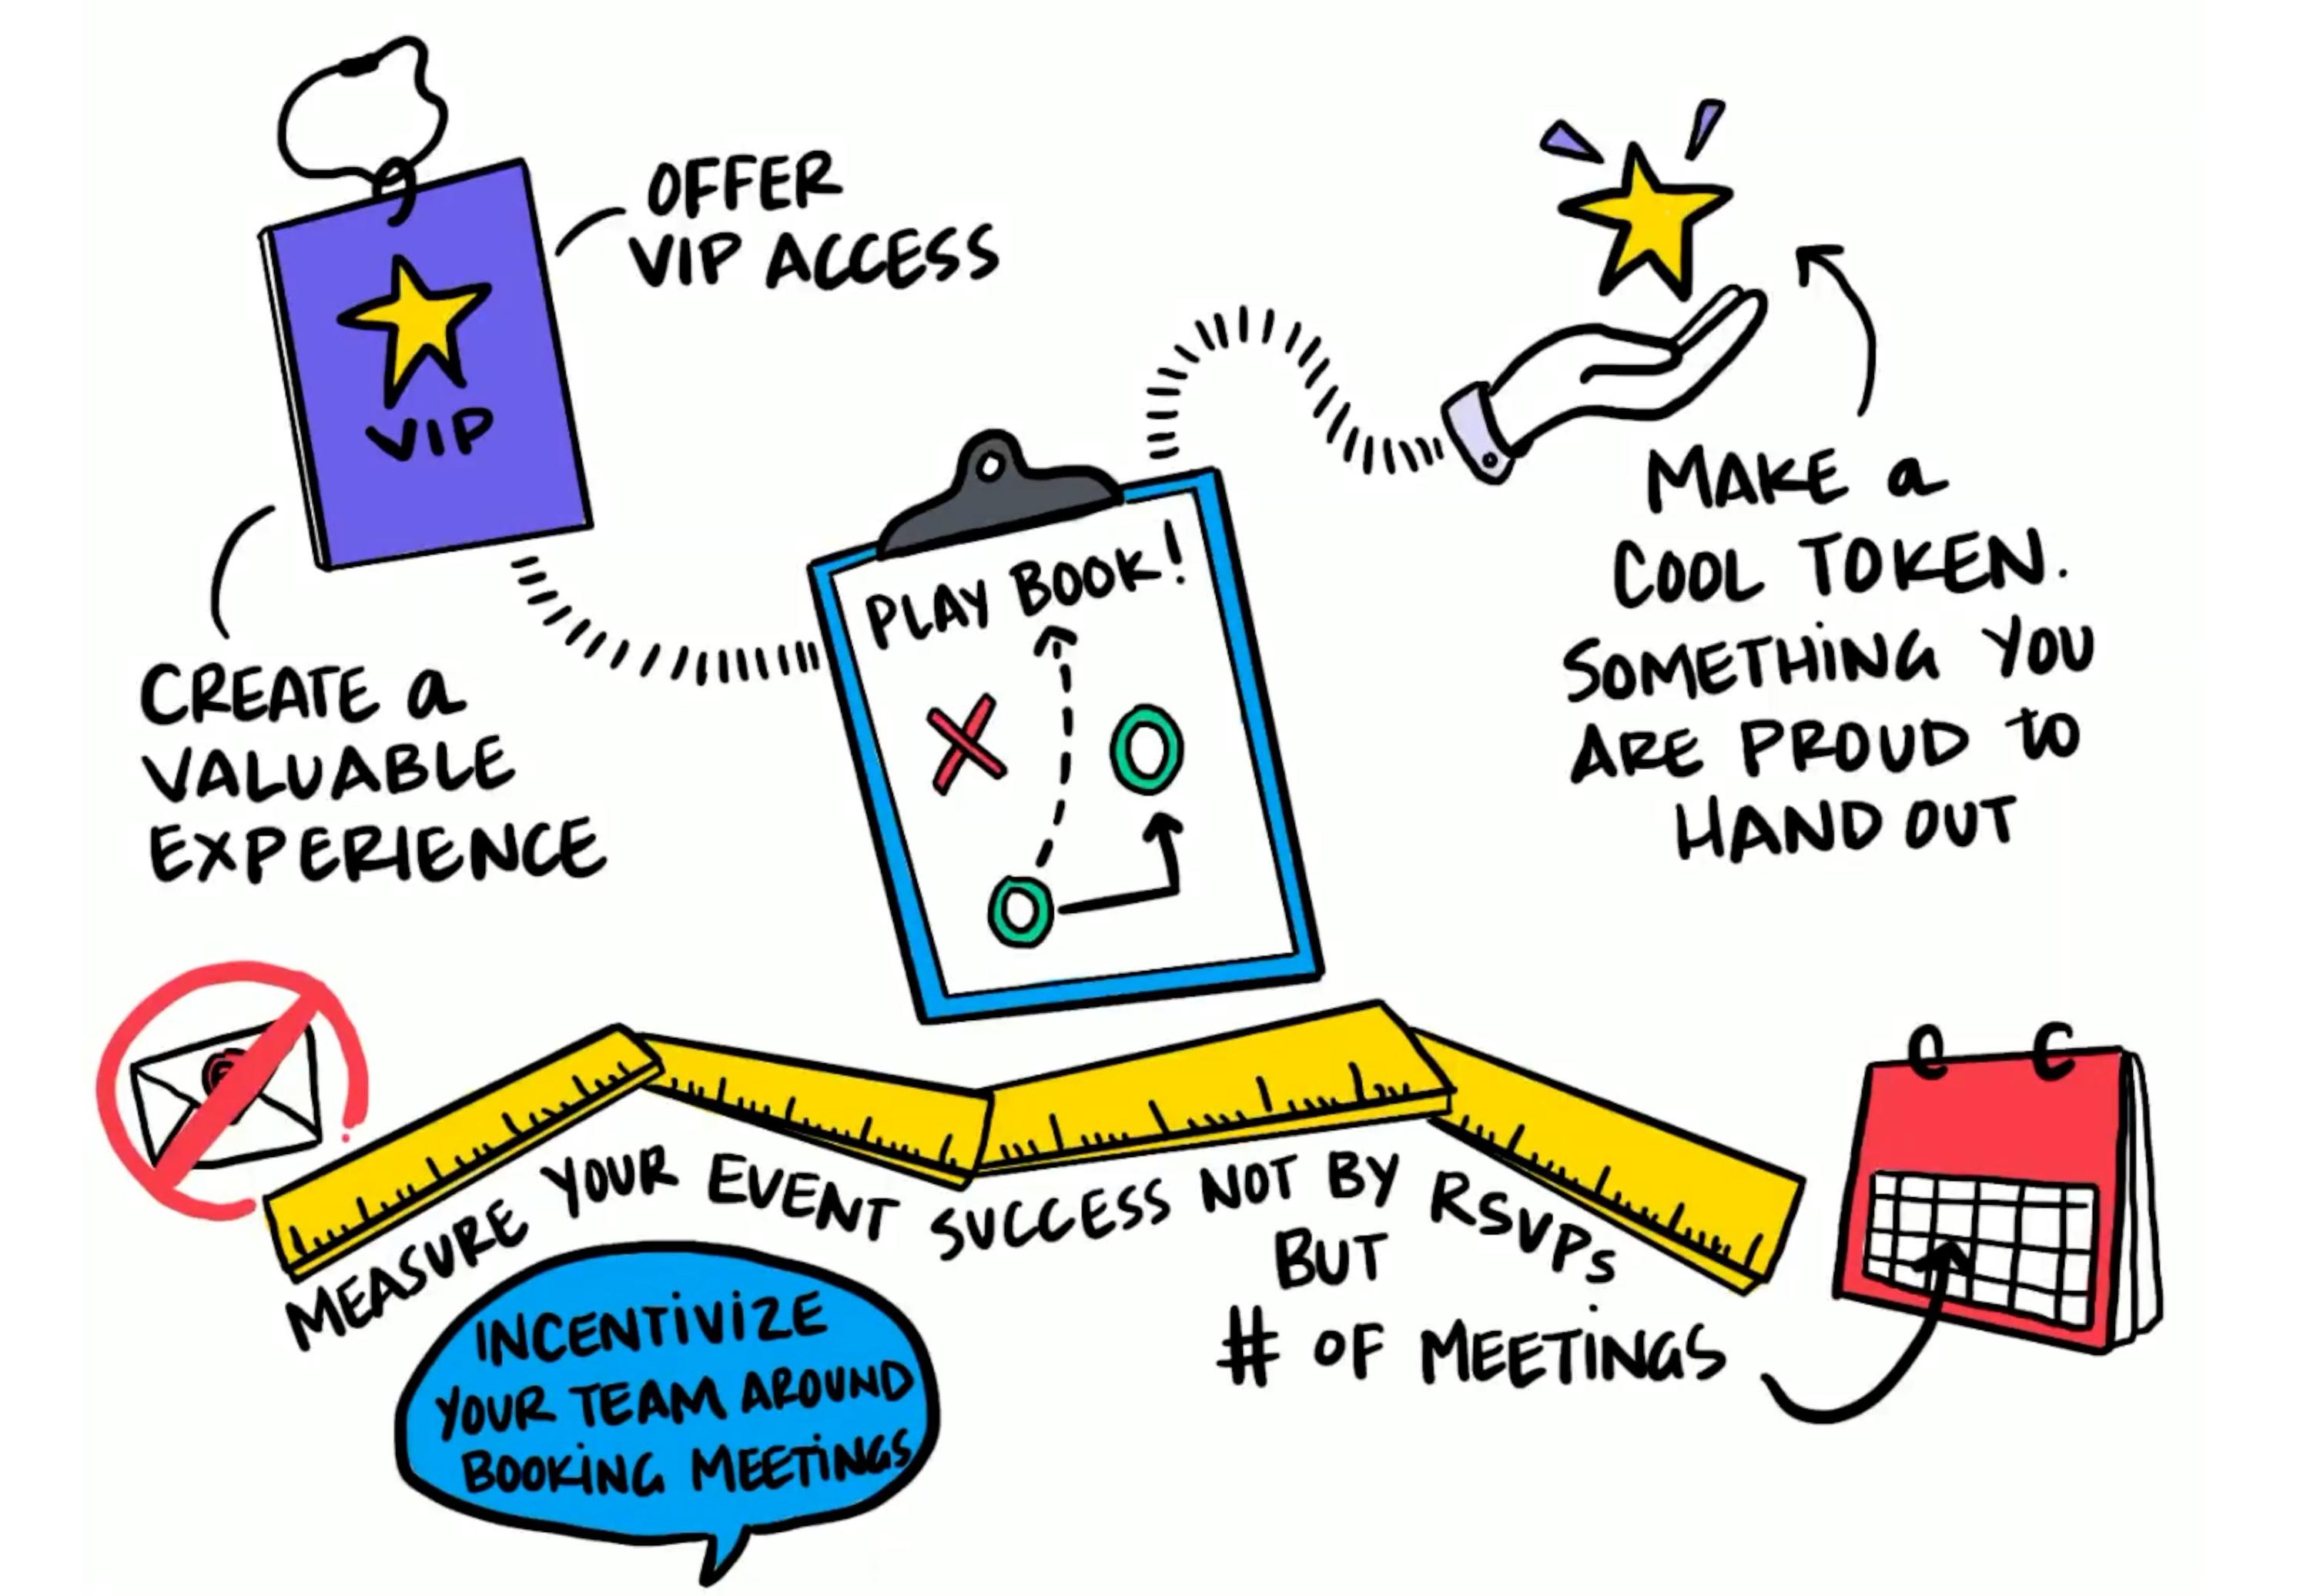 book trade shows vip playbook